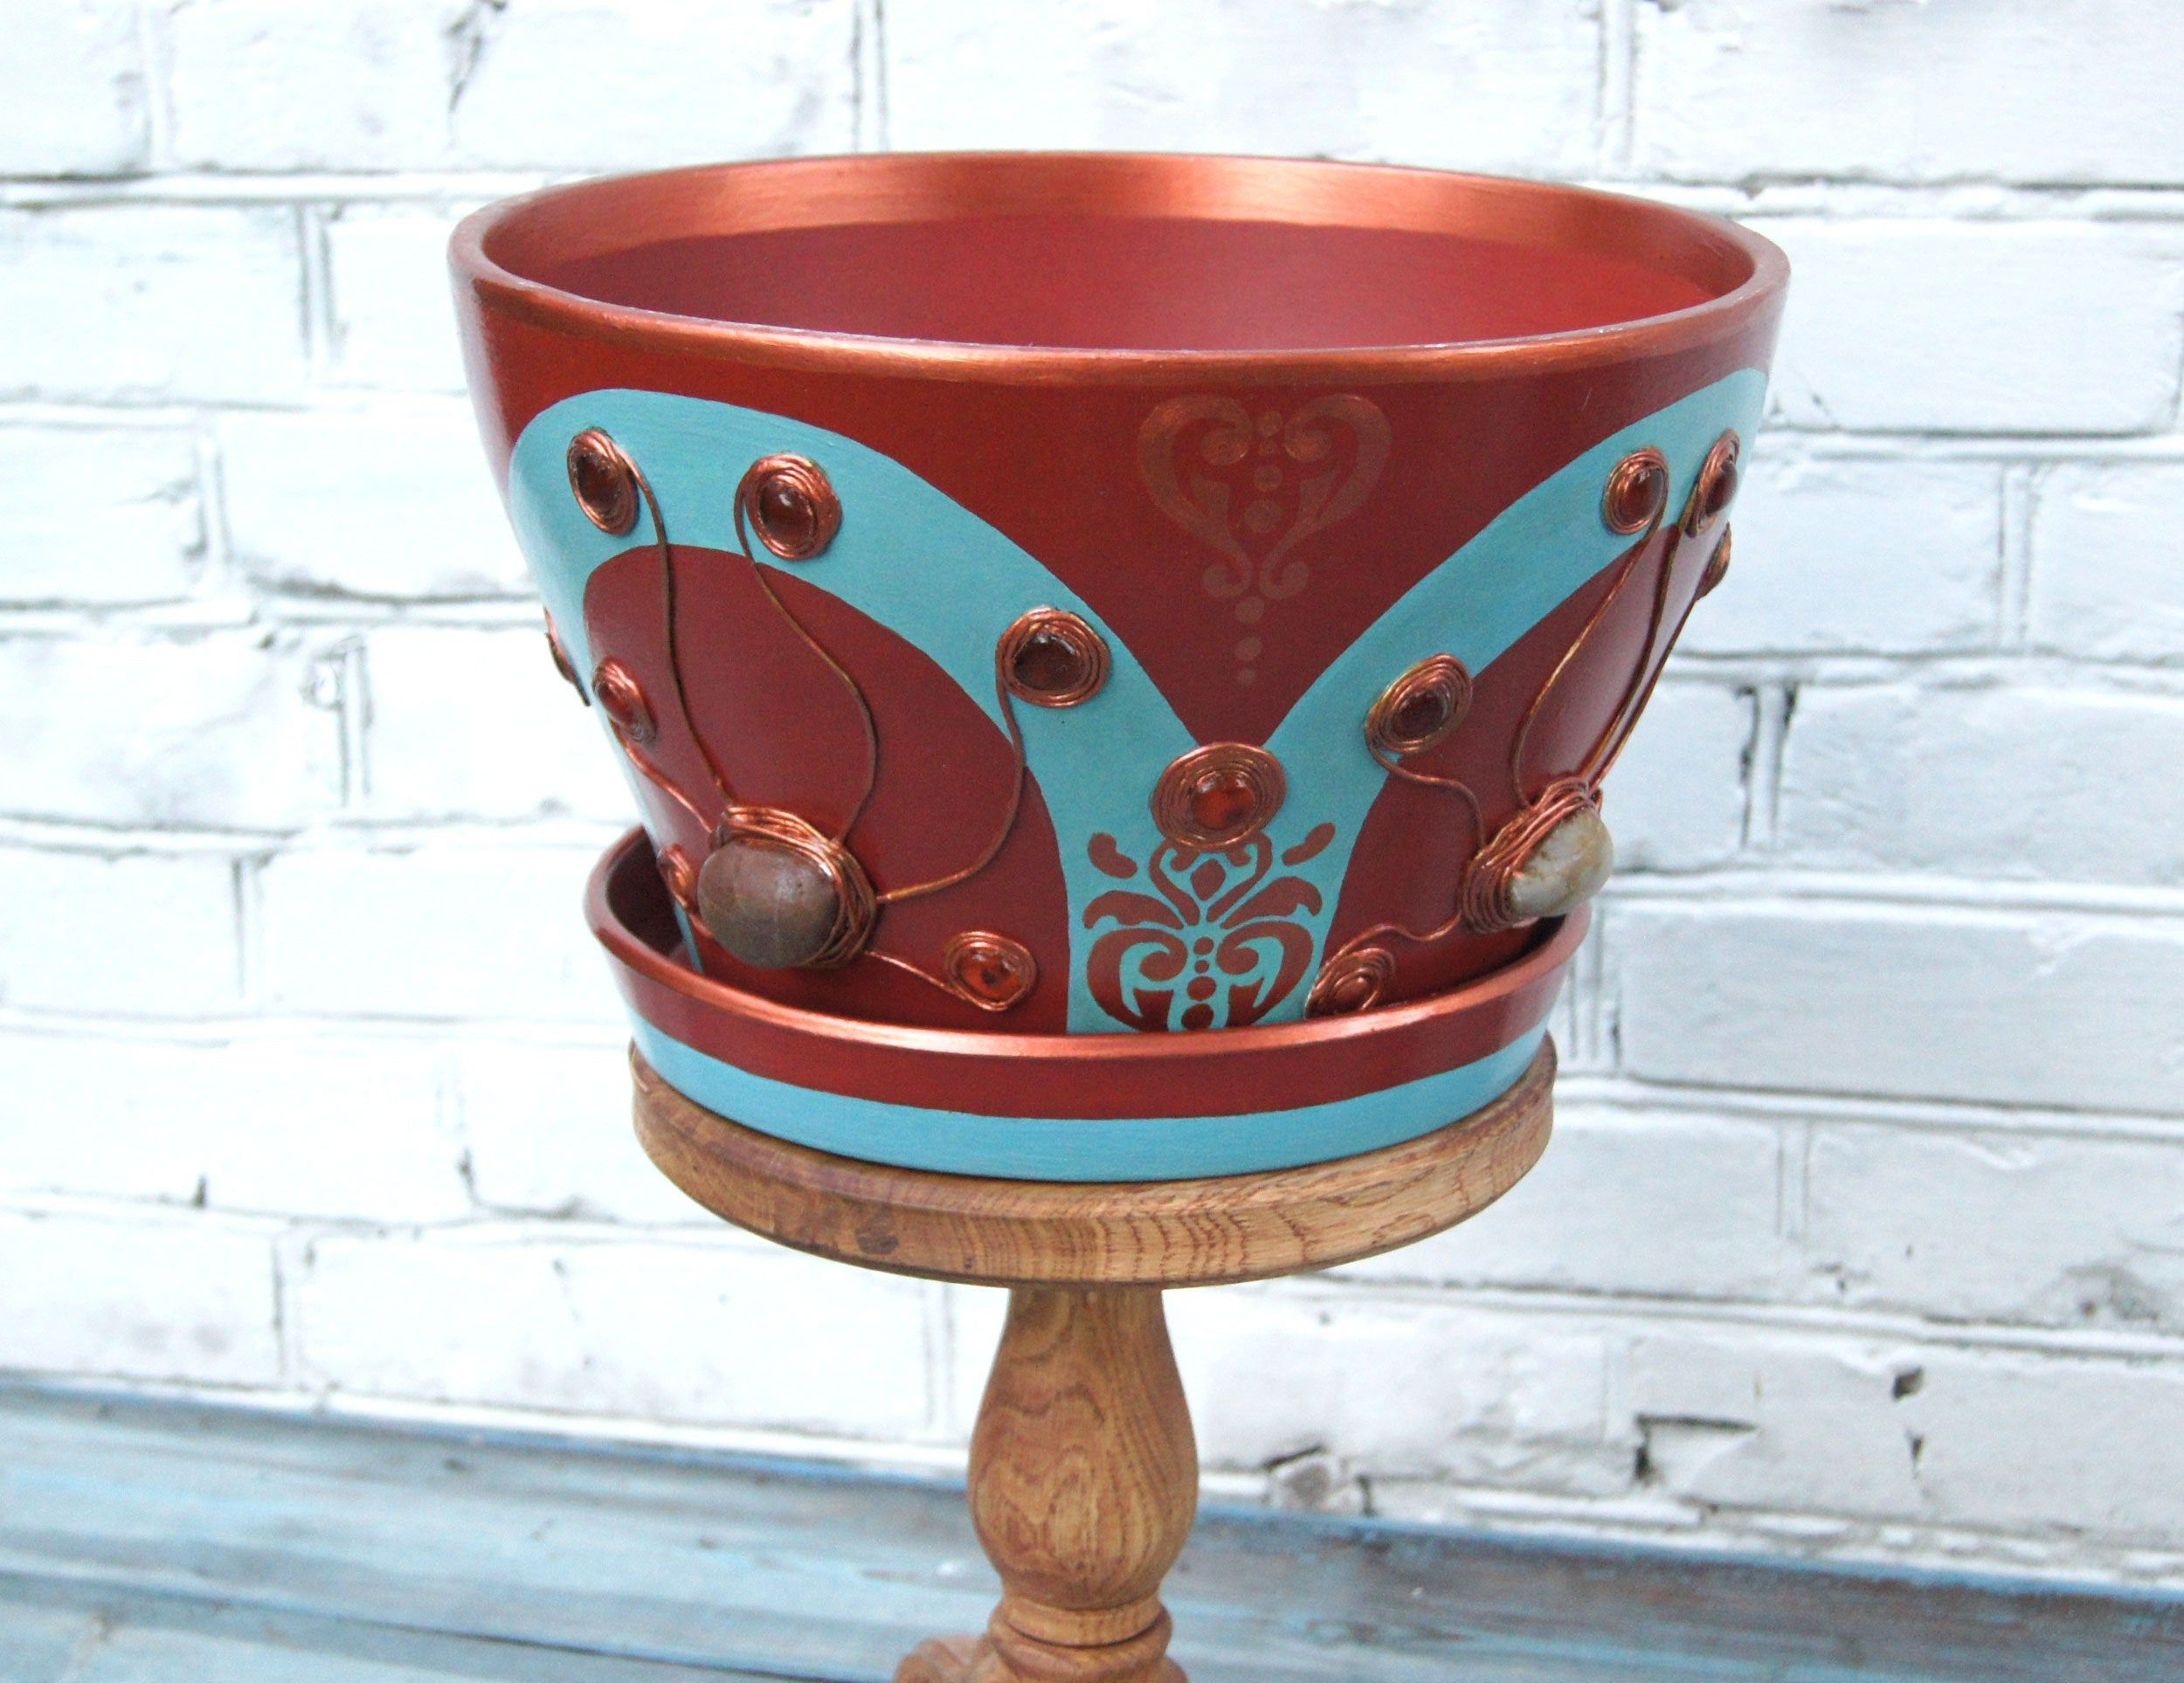 Large Hand Painted Ceramic Plant Pot Indoor Turquoise Red Flower Pot Plant Holder With Drainage Hole Large Ceramic Planter Solid Cache Pot In 2020